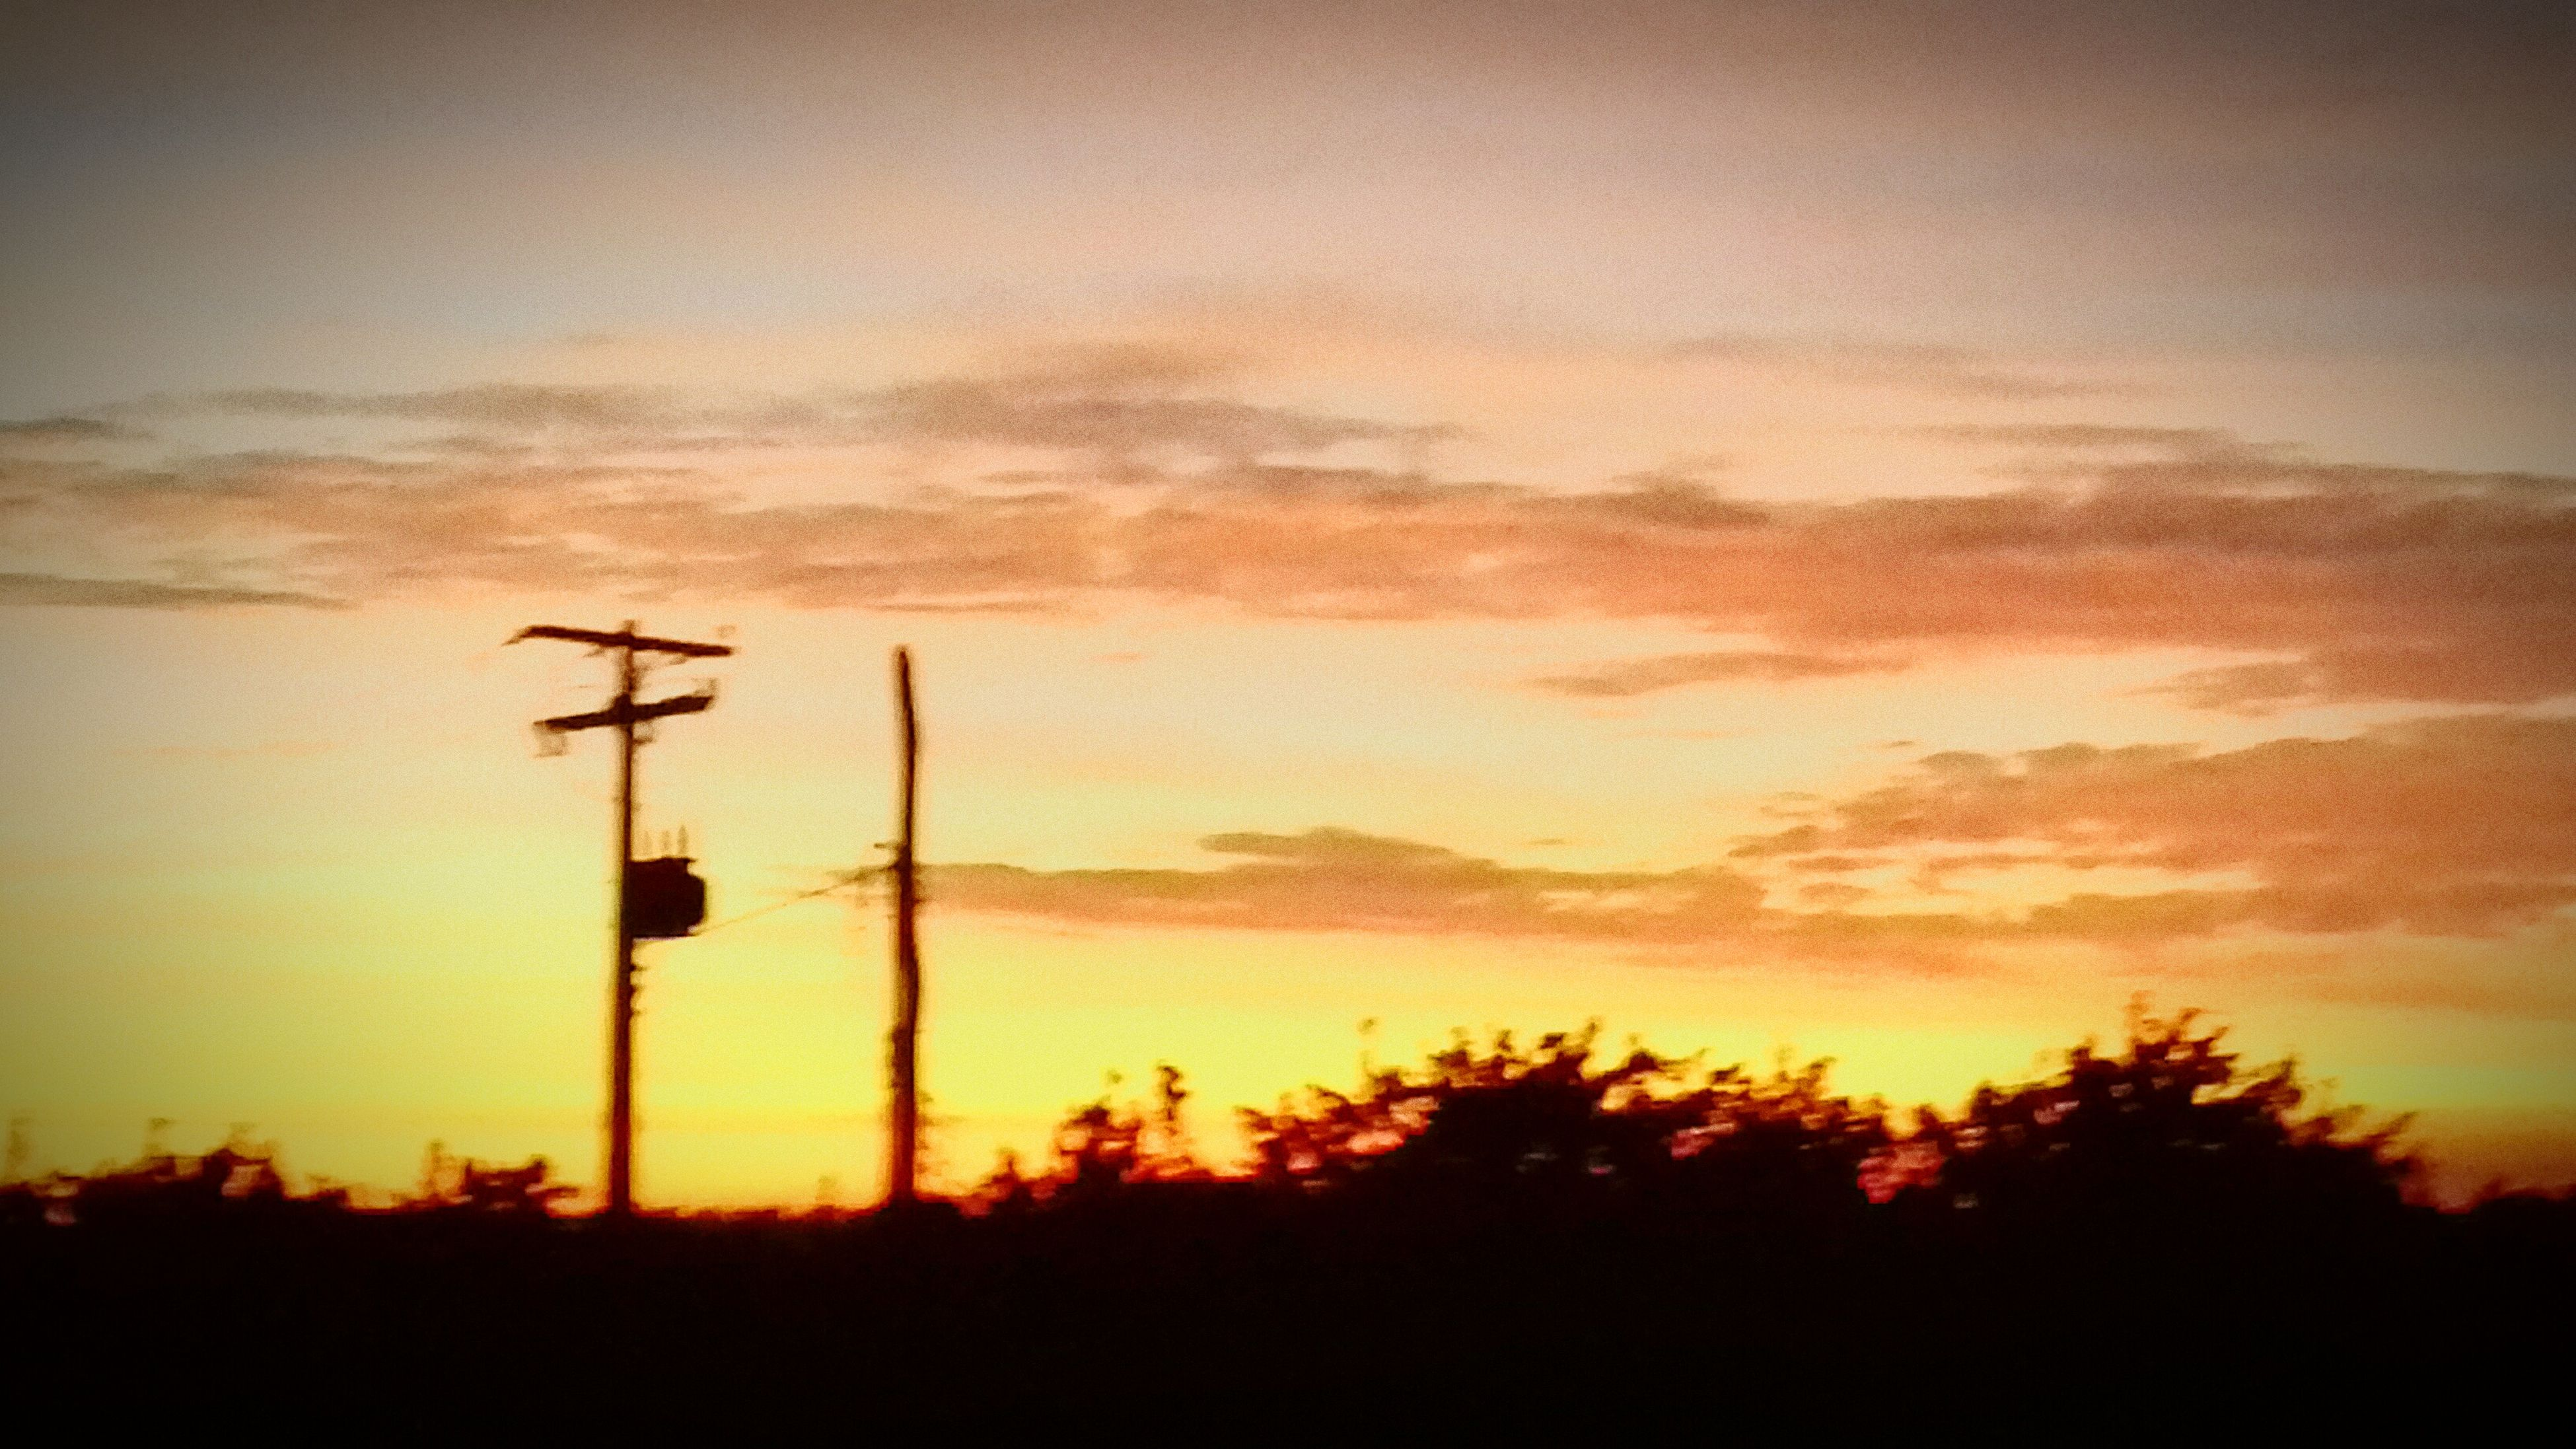 sunset, silhouette, orange color, scenics, tranquility, beauty in nature, tranquil scene, sky, nature, tree, landscape, idyllic, fuel and power generation, electricity pylon, technology, dramatic sky, outdoors, electricity, outline, field